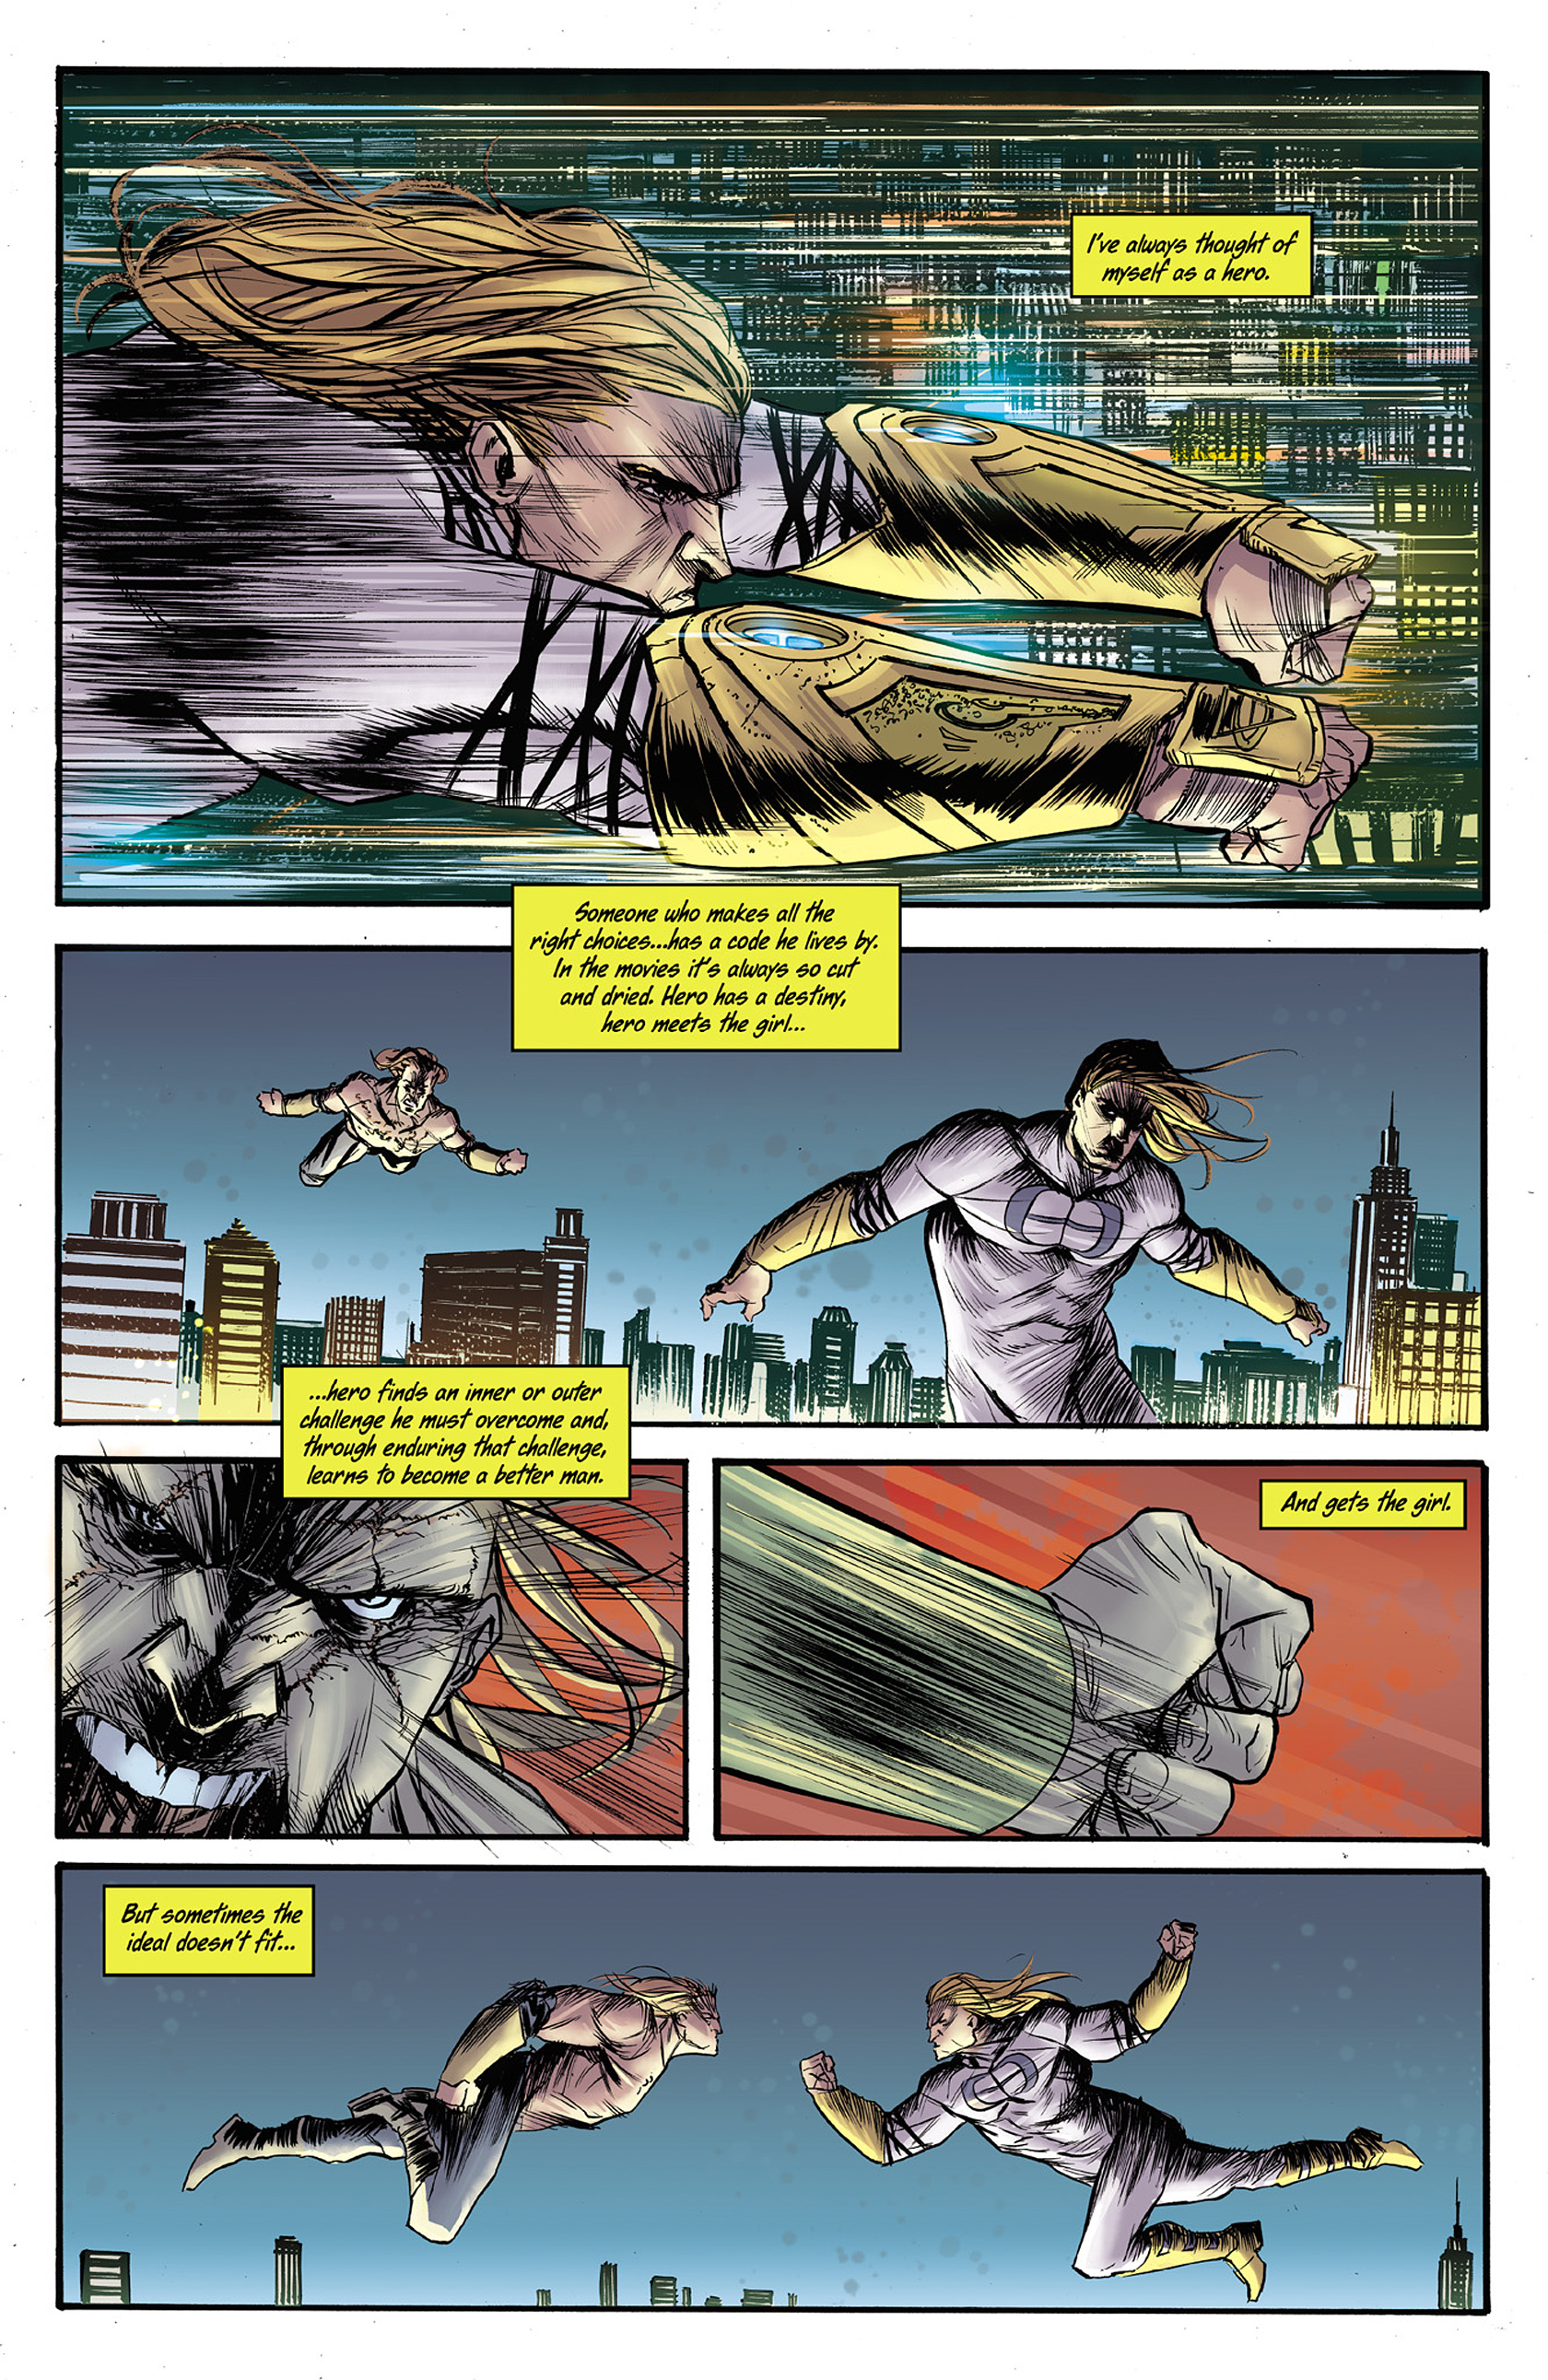 Read online Buzzkill comic -  Issue #4 - 17